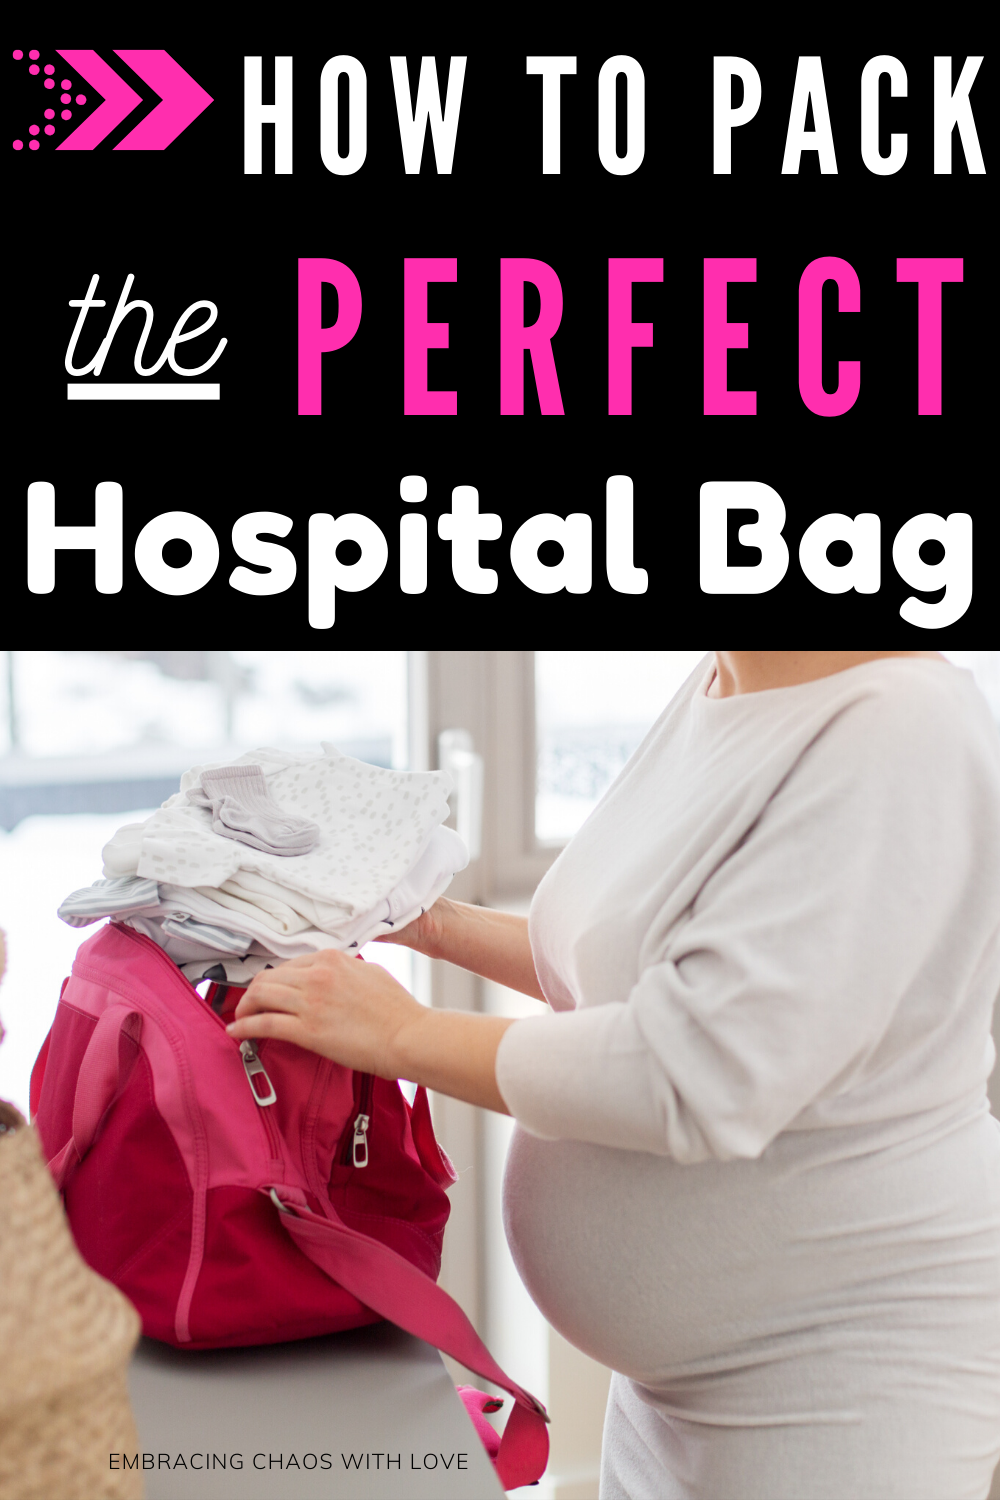 How to Pack the Perfect Hospital Bag